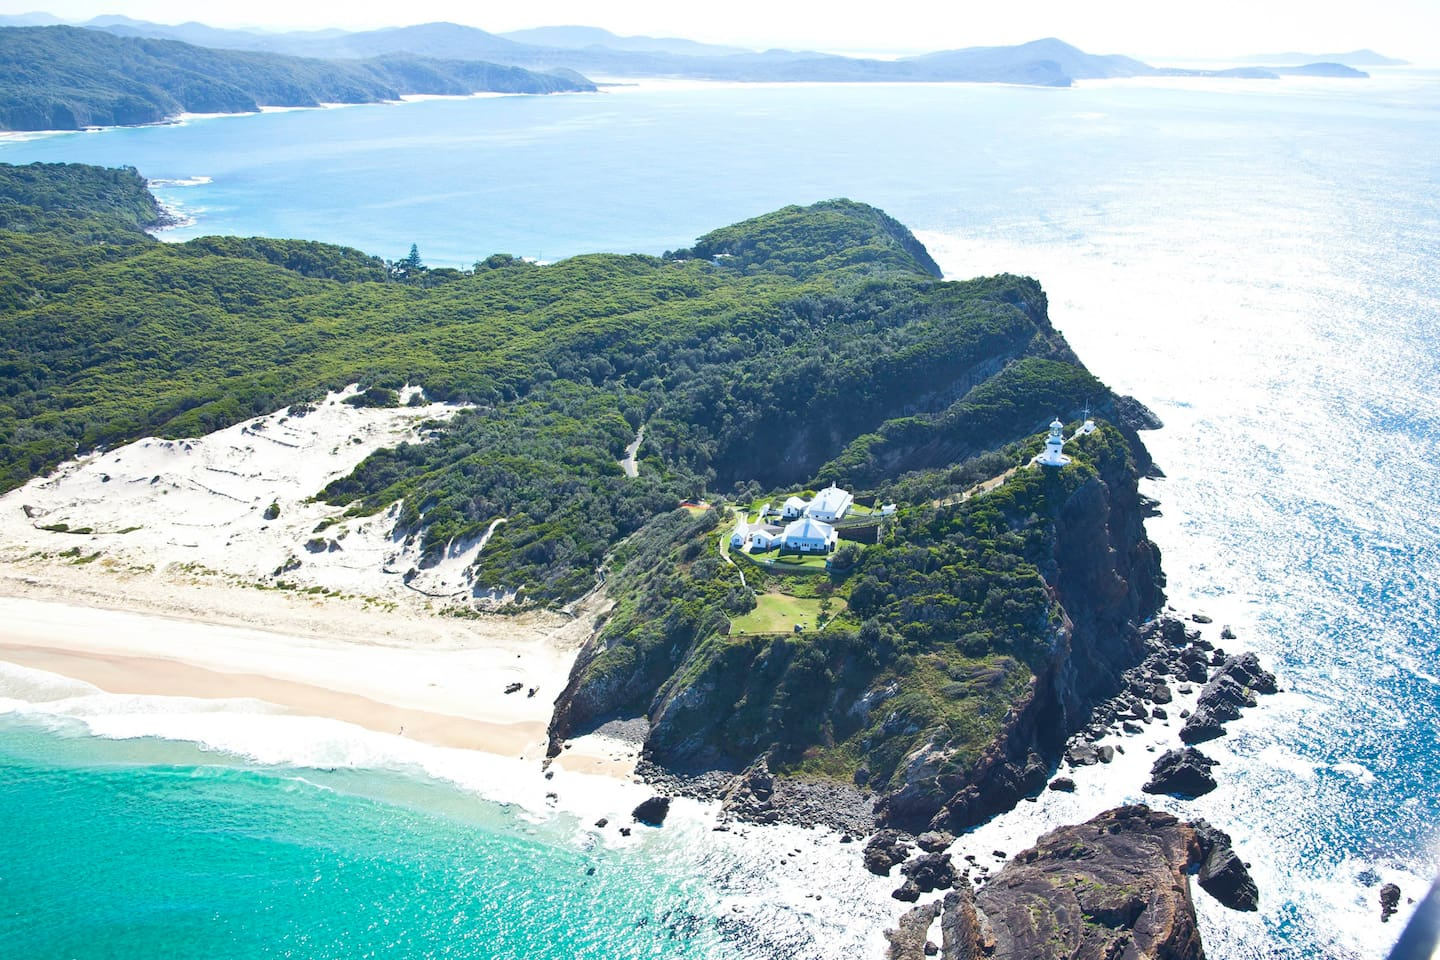 Sugarloaf Point Lighthouse, Seal Rocks NSW. 3 lighthouse keepers' cottages nestled beneath lighttower